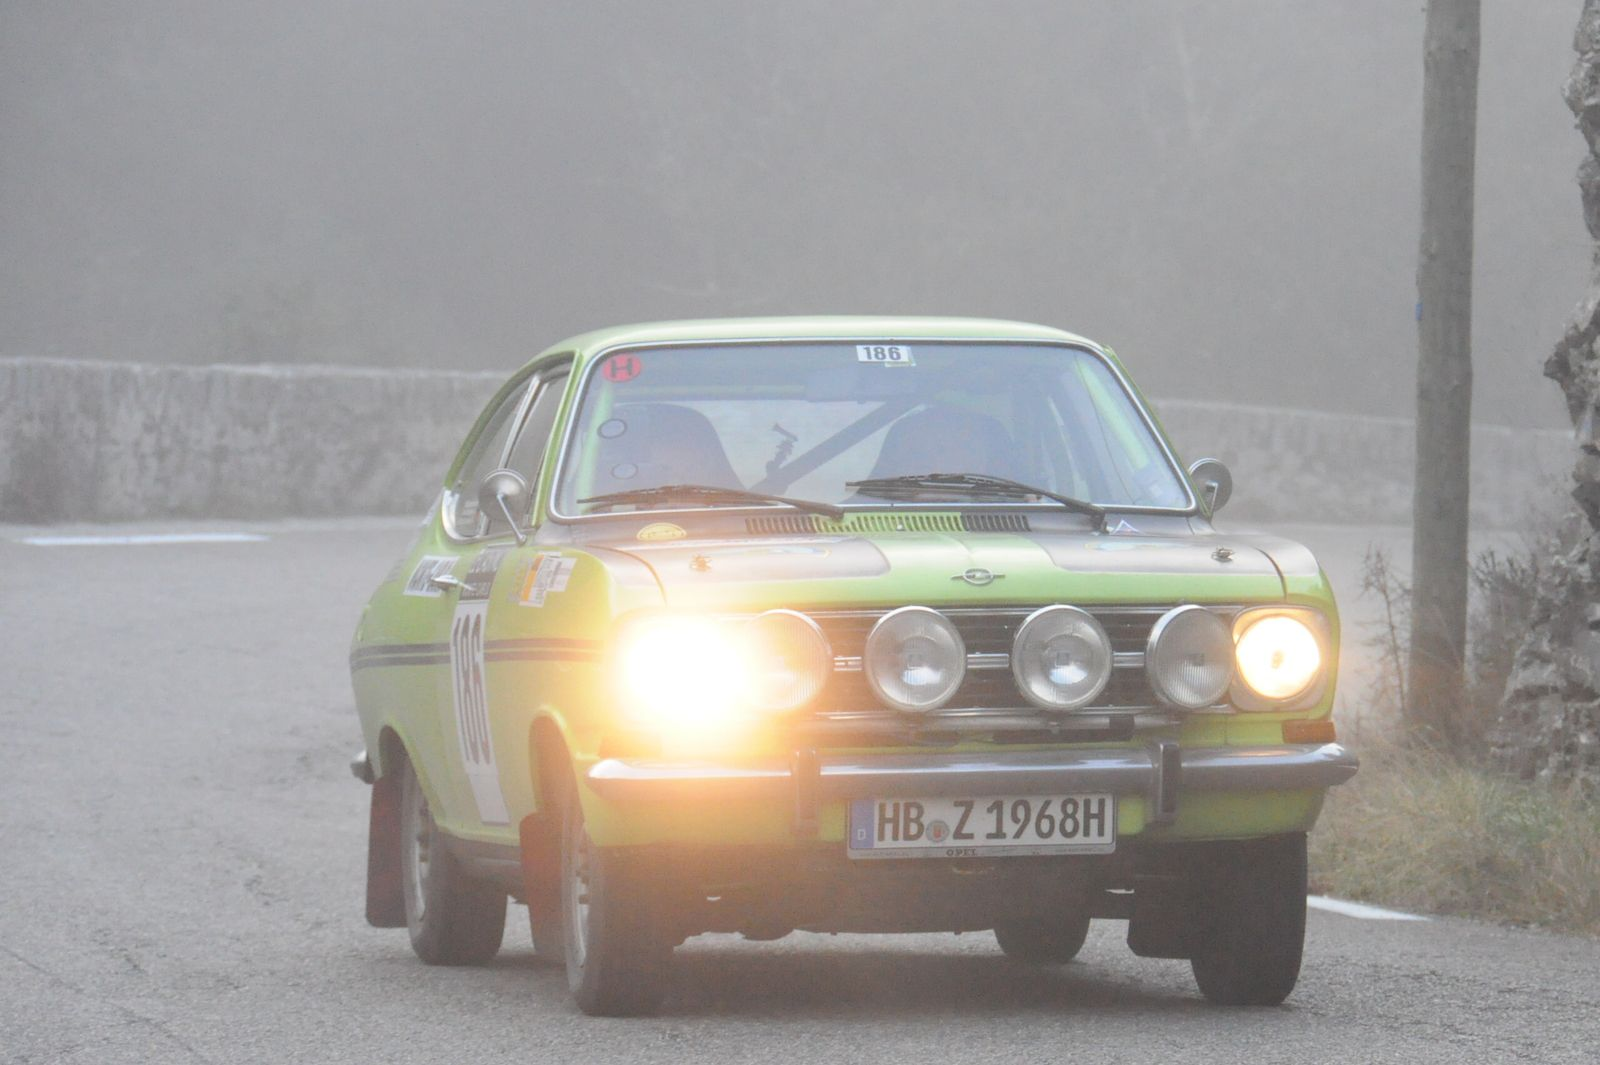 Opel Kadett B Rallye 1968 ..... Photo : R.S.